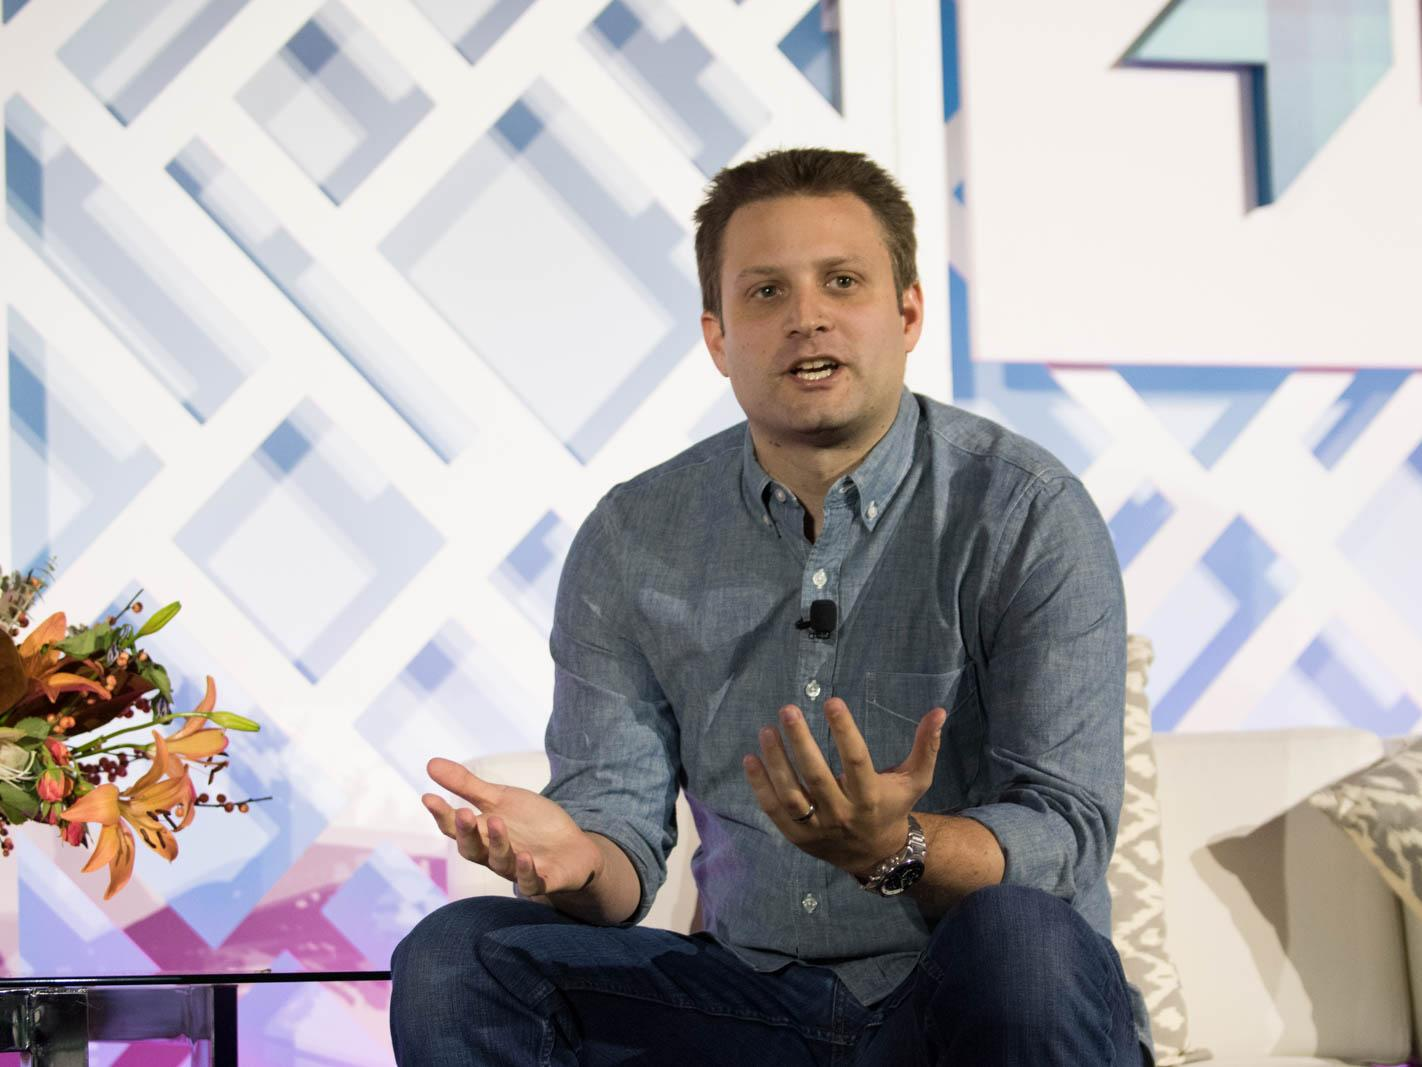 Blue apron yahoo finance - Warehouse Workers At 2 Billion Food Startup Blue Apron Complain Of Stressful Violent Conditions Report Says